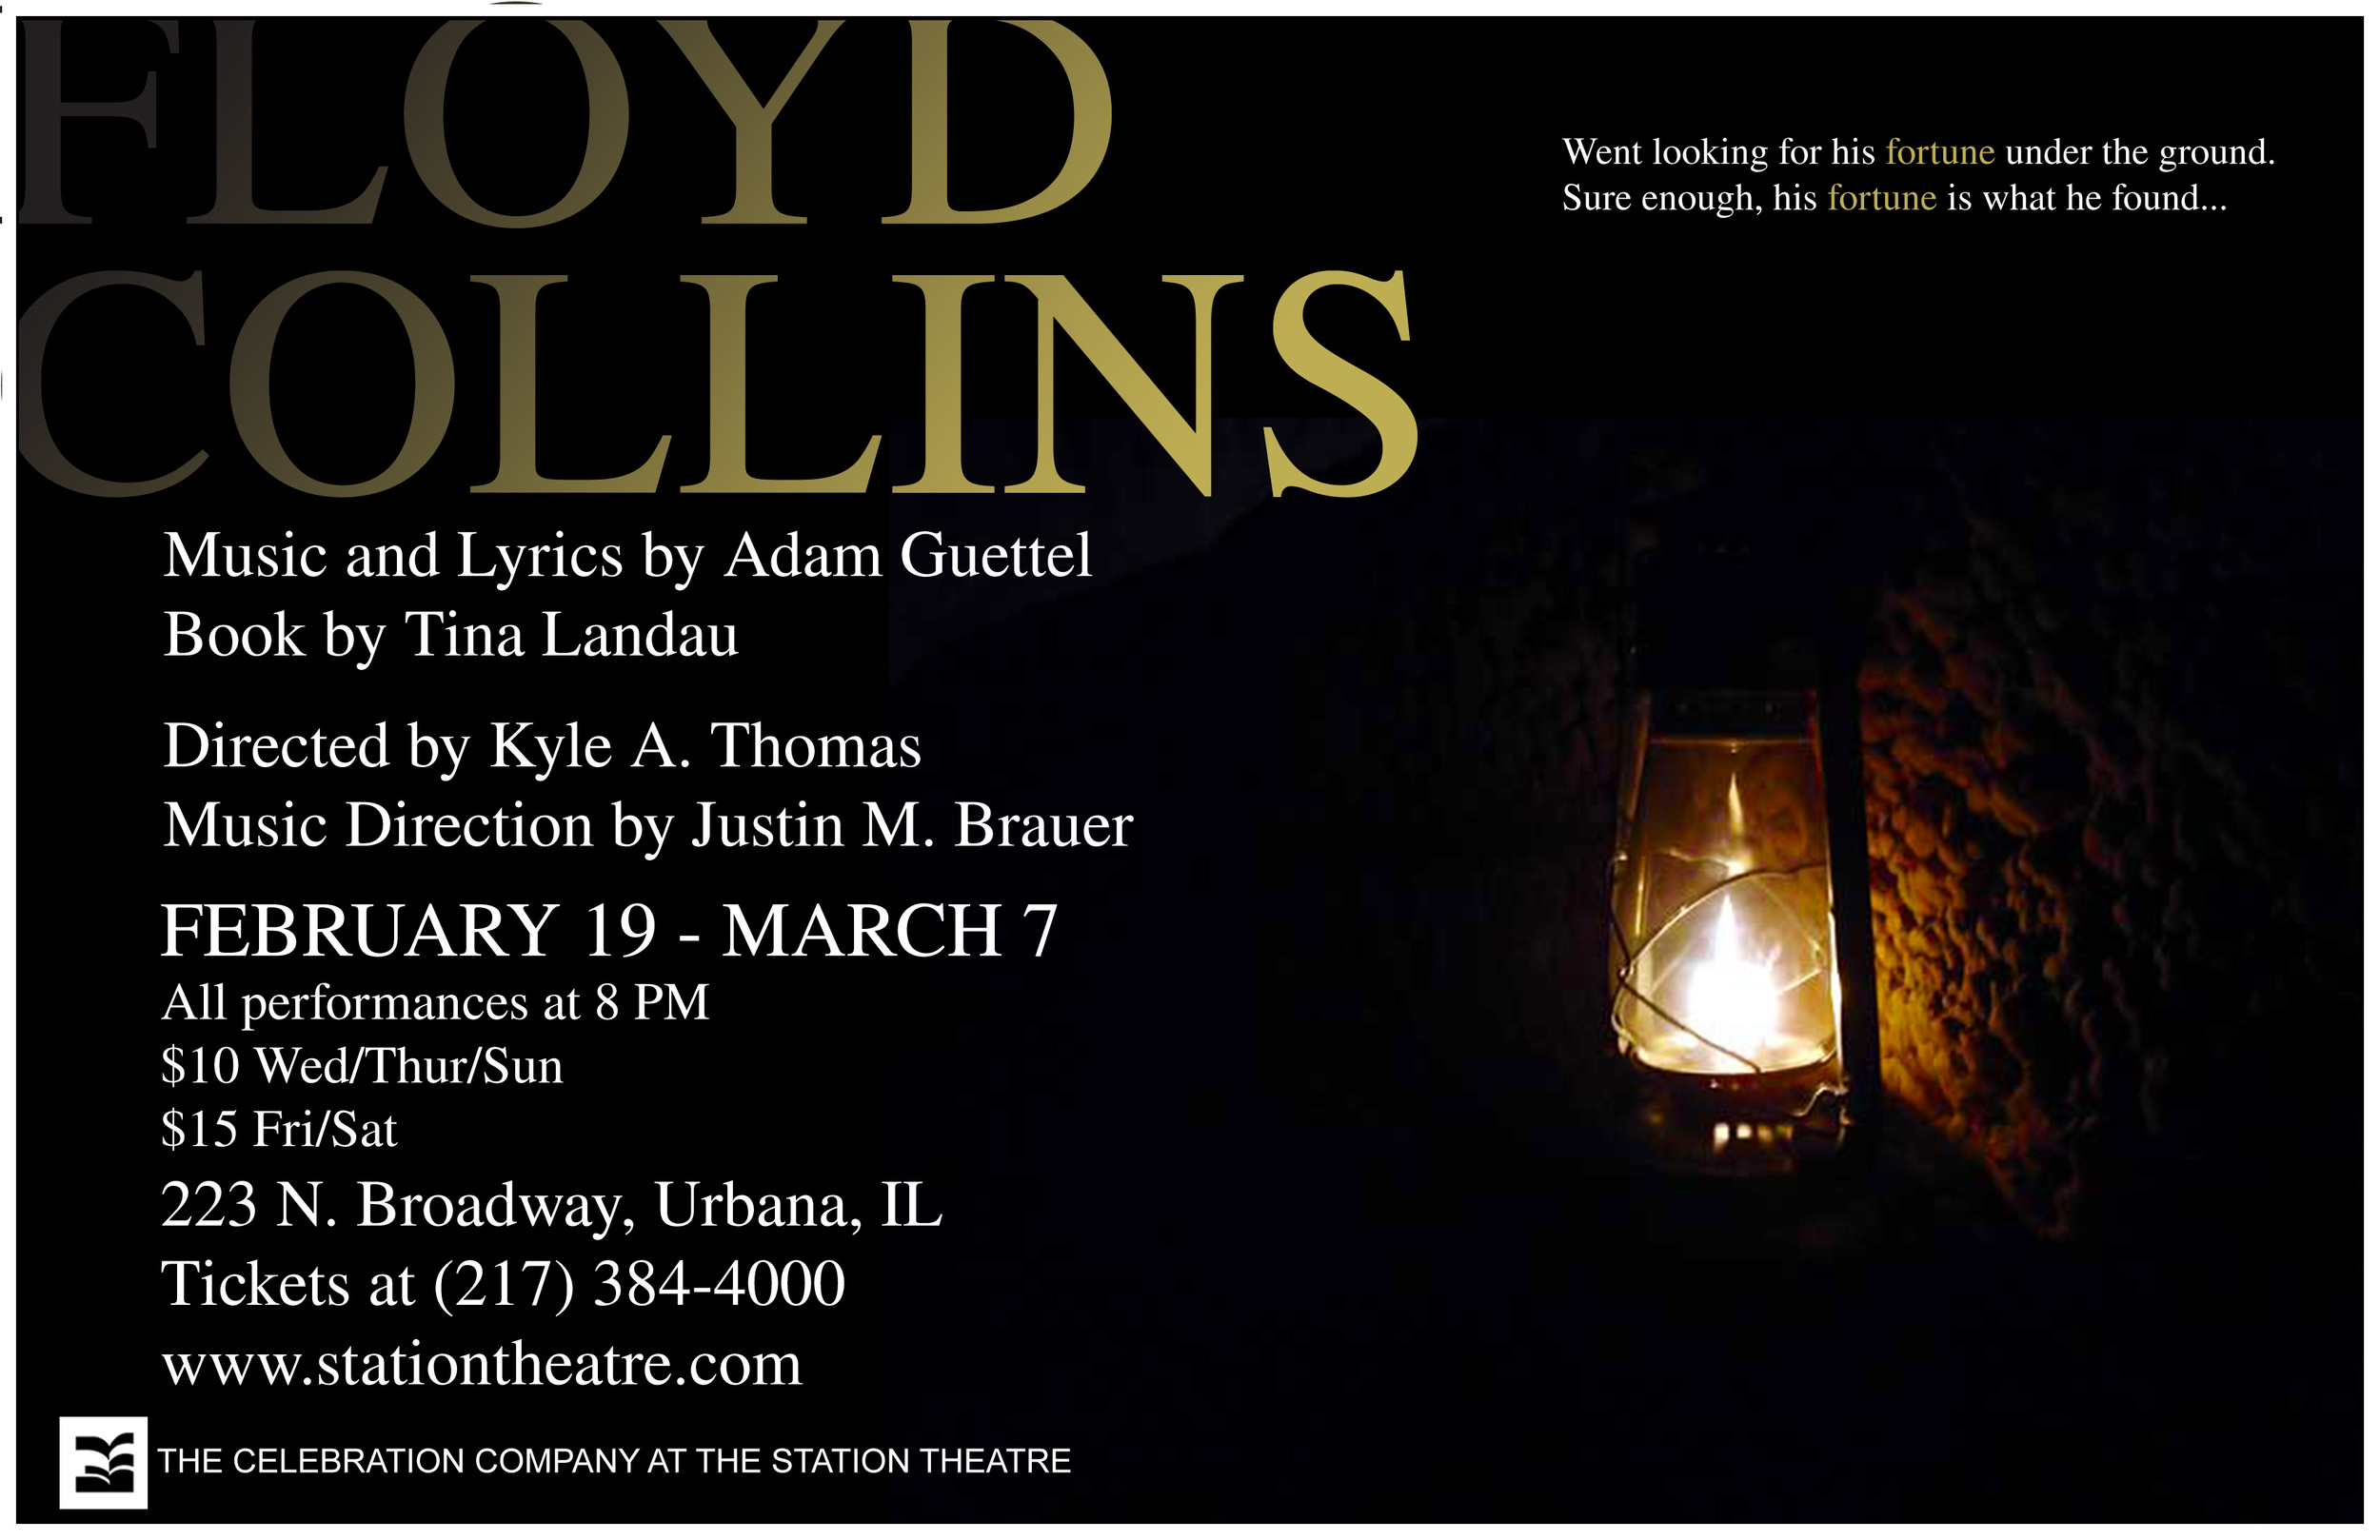 Floyd Collins Poster